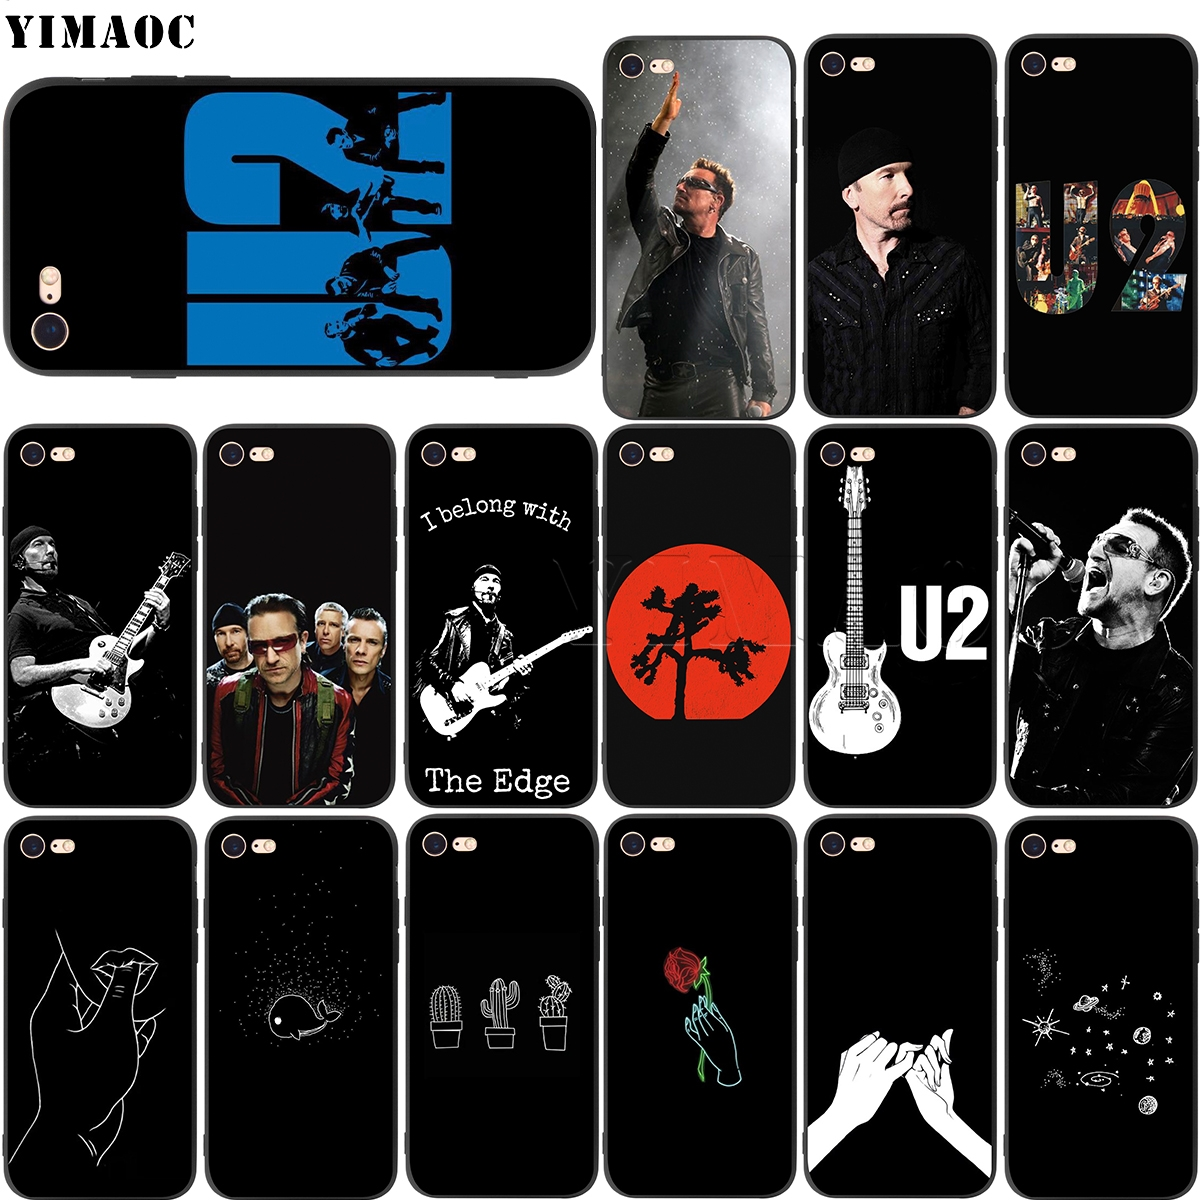 YIMAOC U2 Bono The Edge Soft Silicone Case for iPhone 11 Pro XS Max XR X 8 7 6 6S Plus 5 5s se image